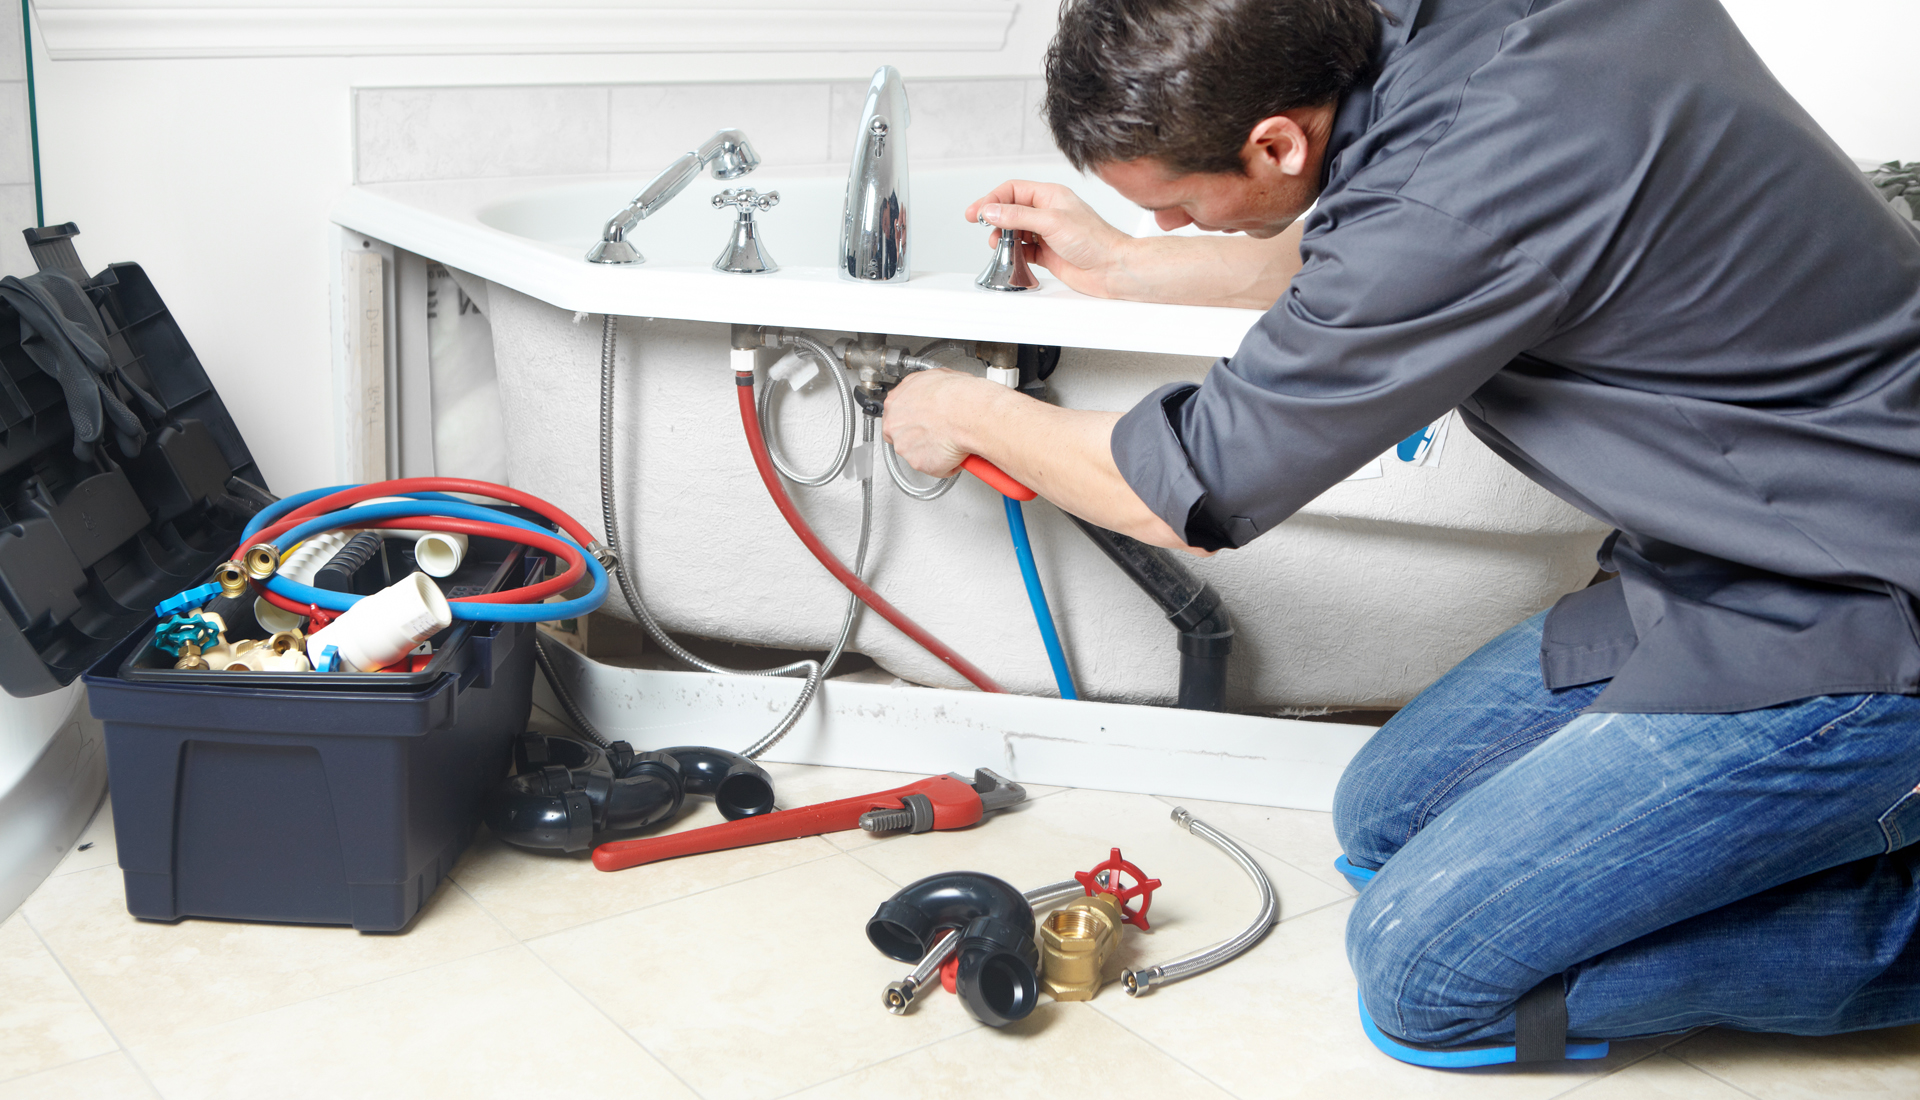 Few Guidelines to Select The Right Plumber to Fix Plumbing Problems